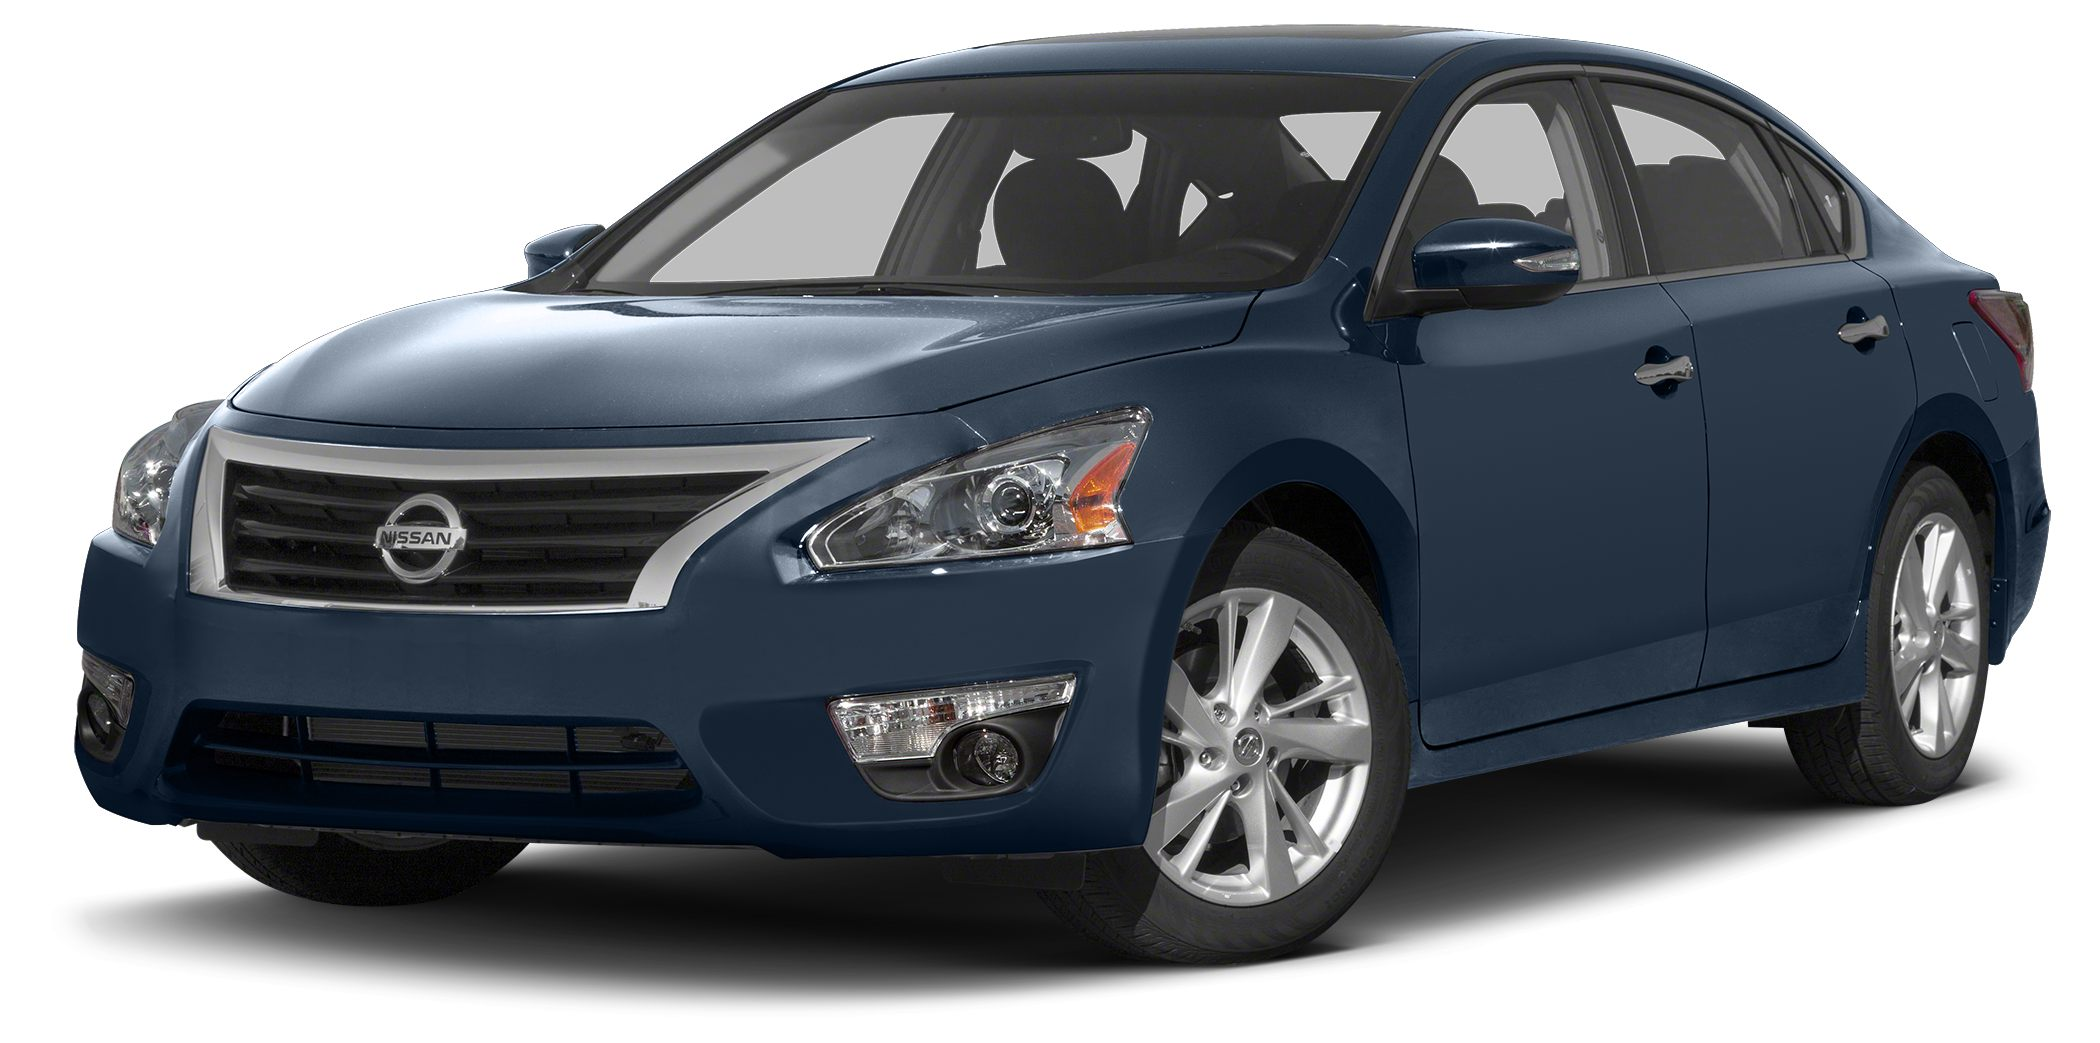 2013 Nissan Altima 25 SL If you demand the best things in life this superb 2013 Nissan Altima SL